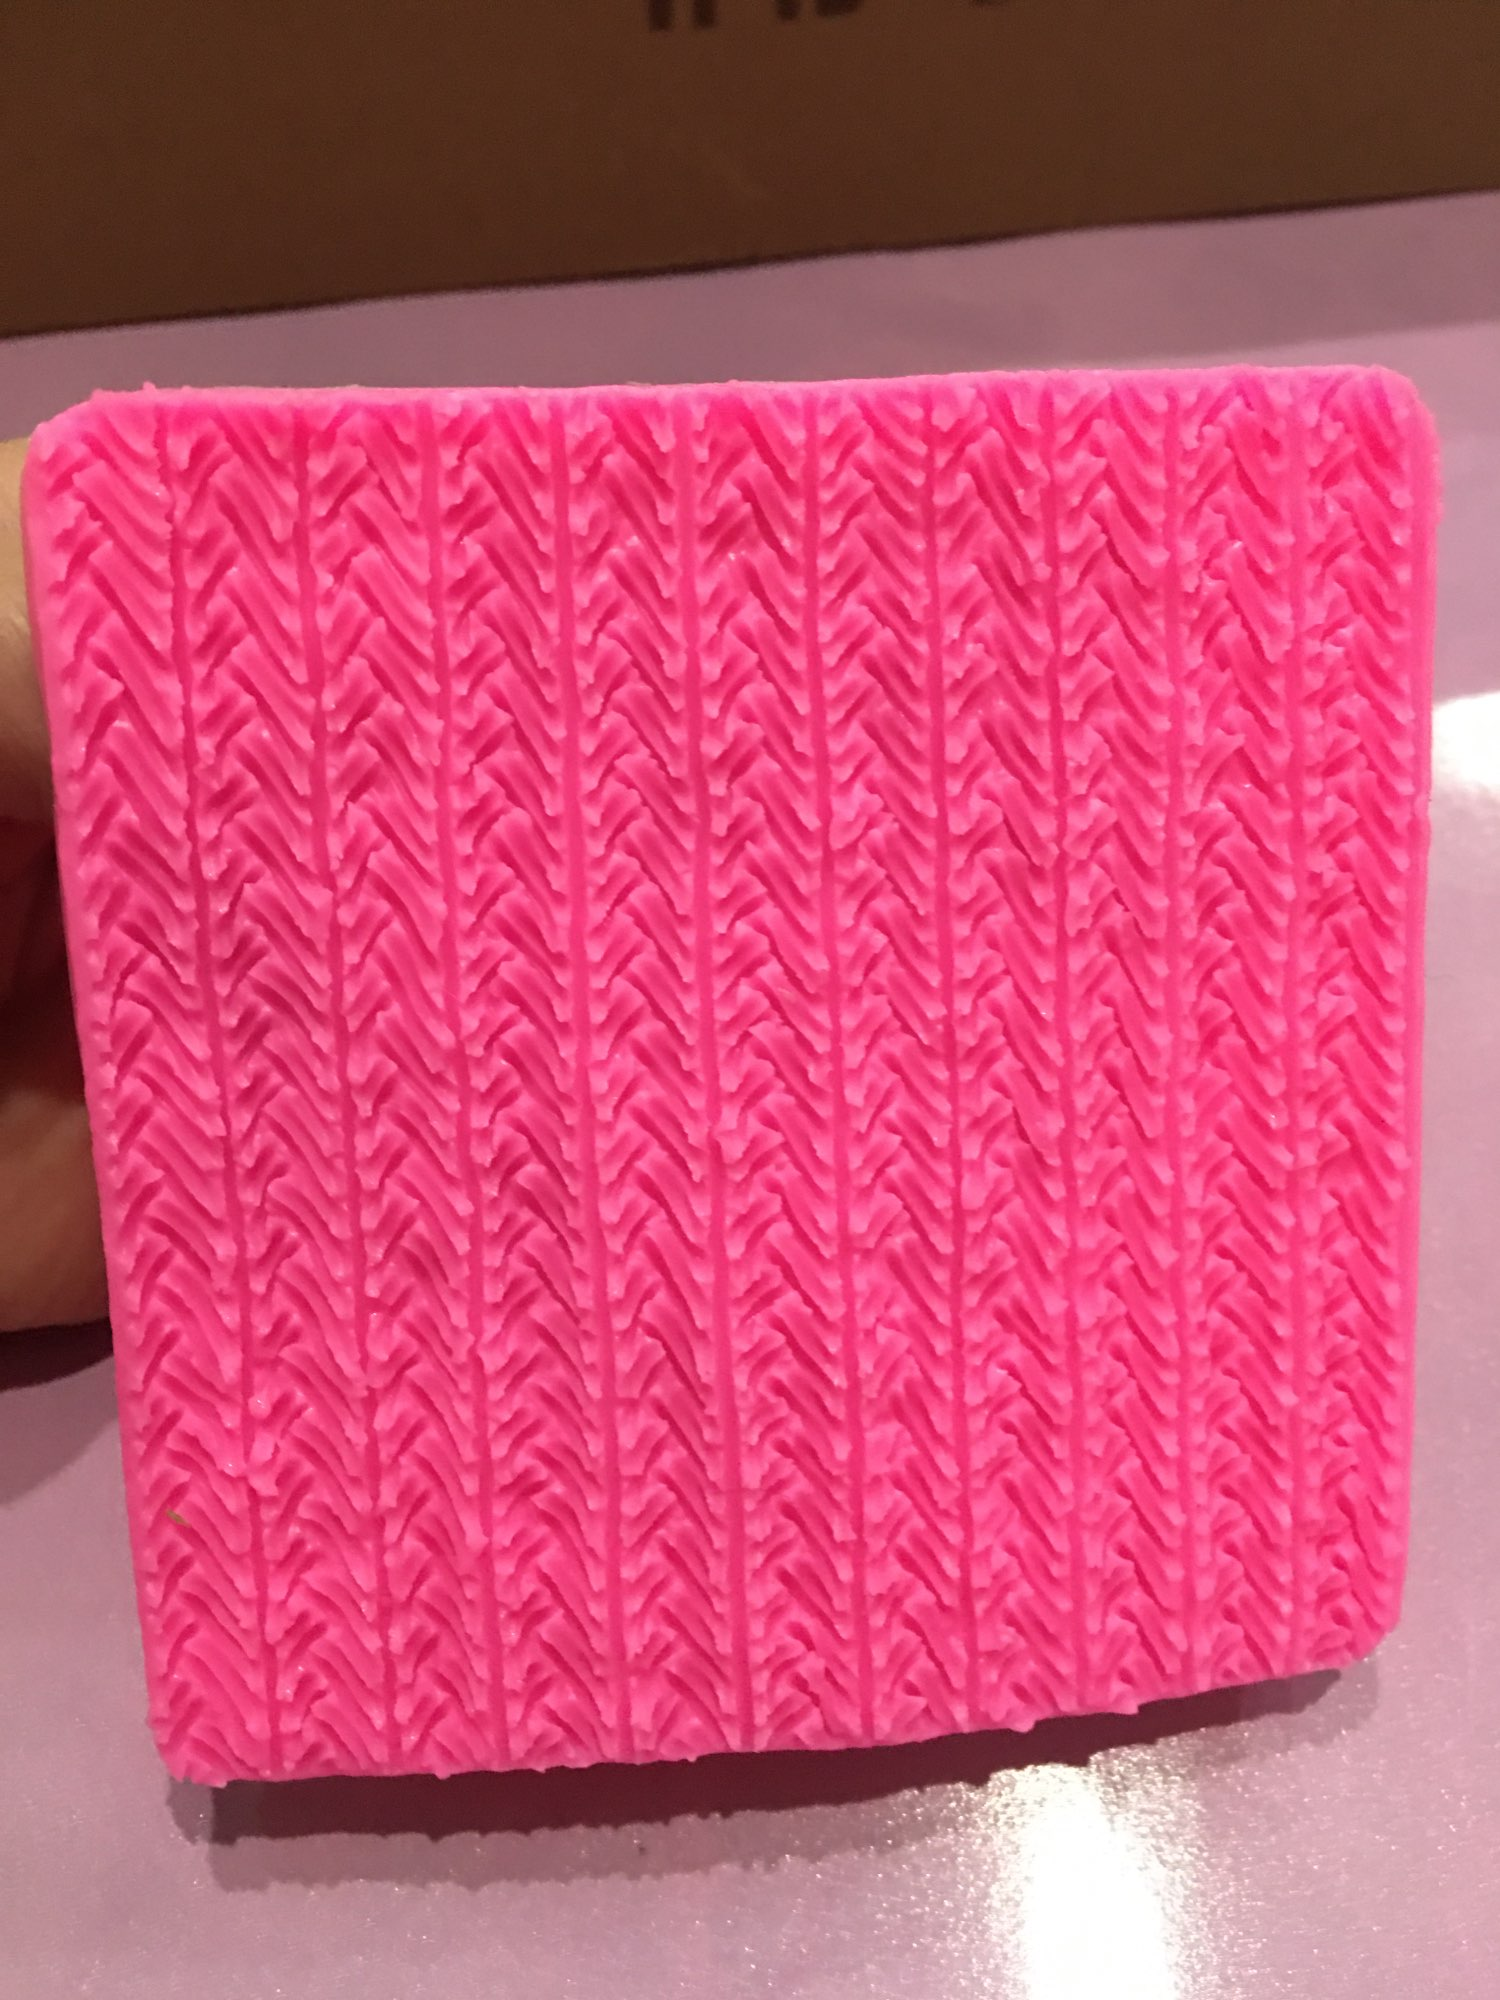 Pink Patterned Textile Cake Decorating Silicone Mold photo review